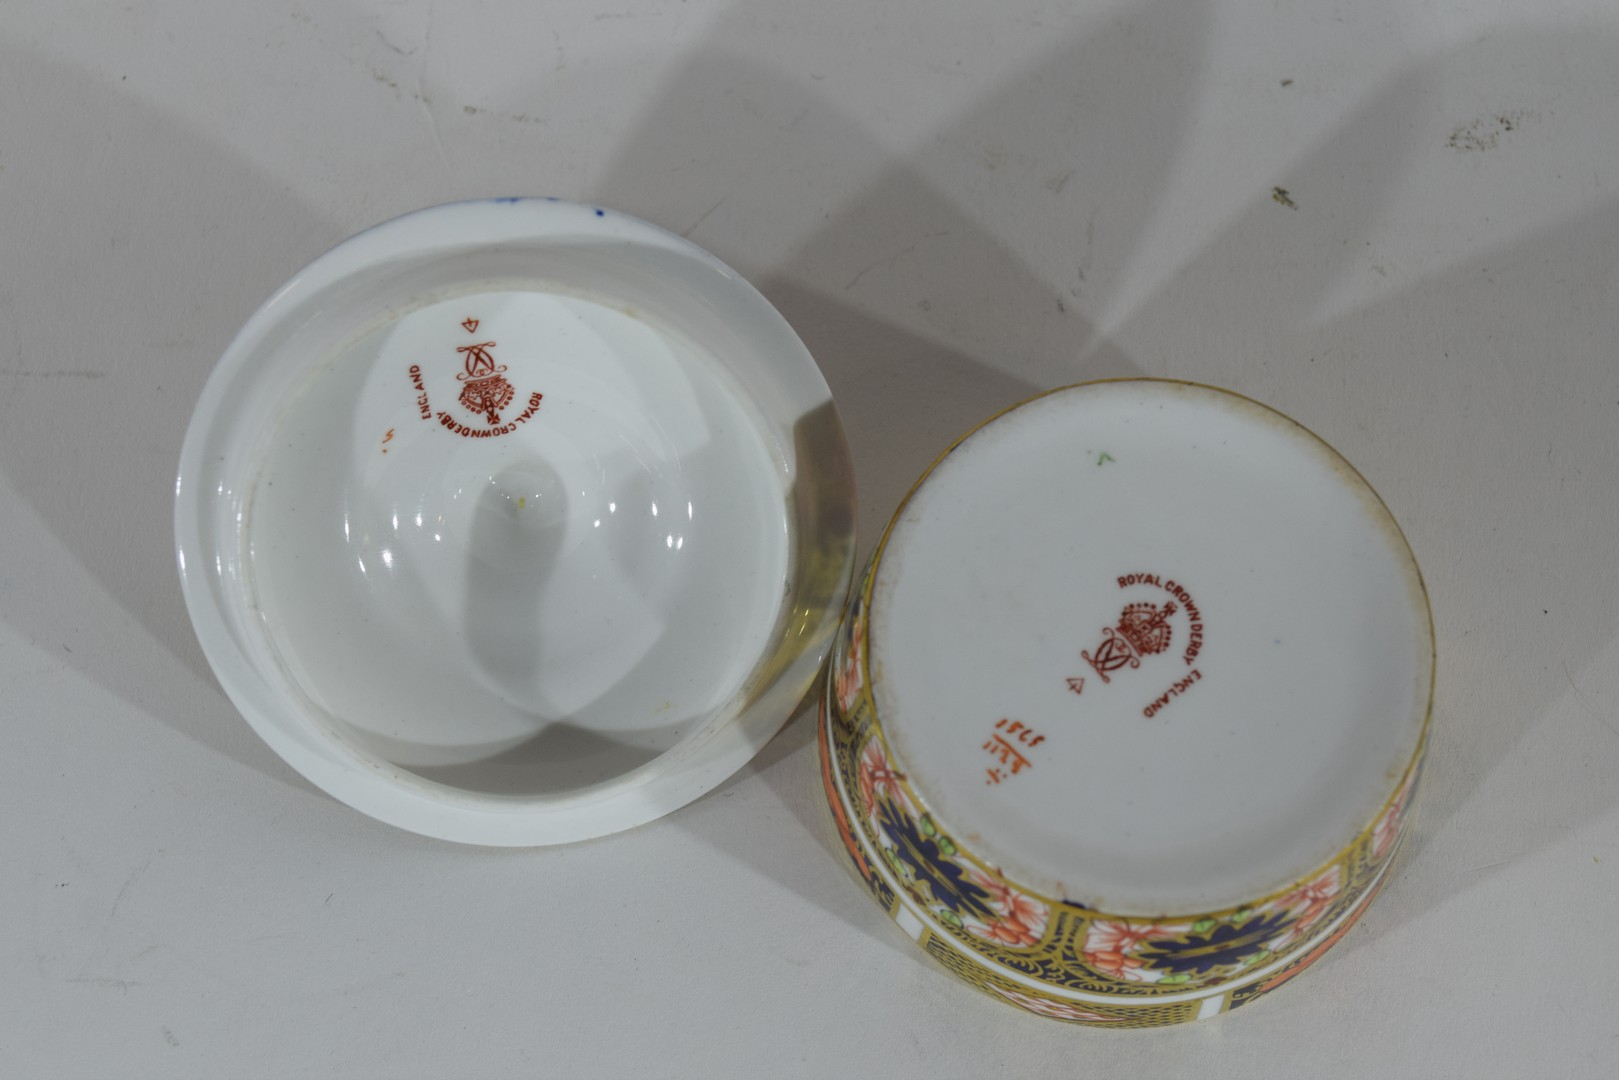 Group of Continental porcelains including a Vienna style cup and saucer - Image 10 of 12